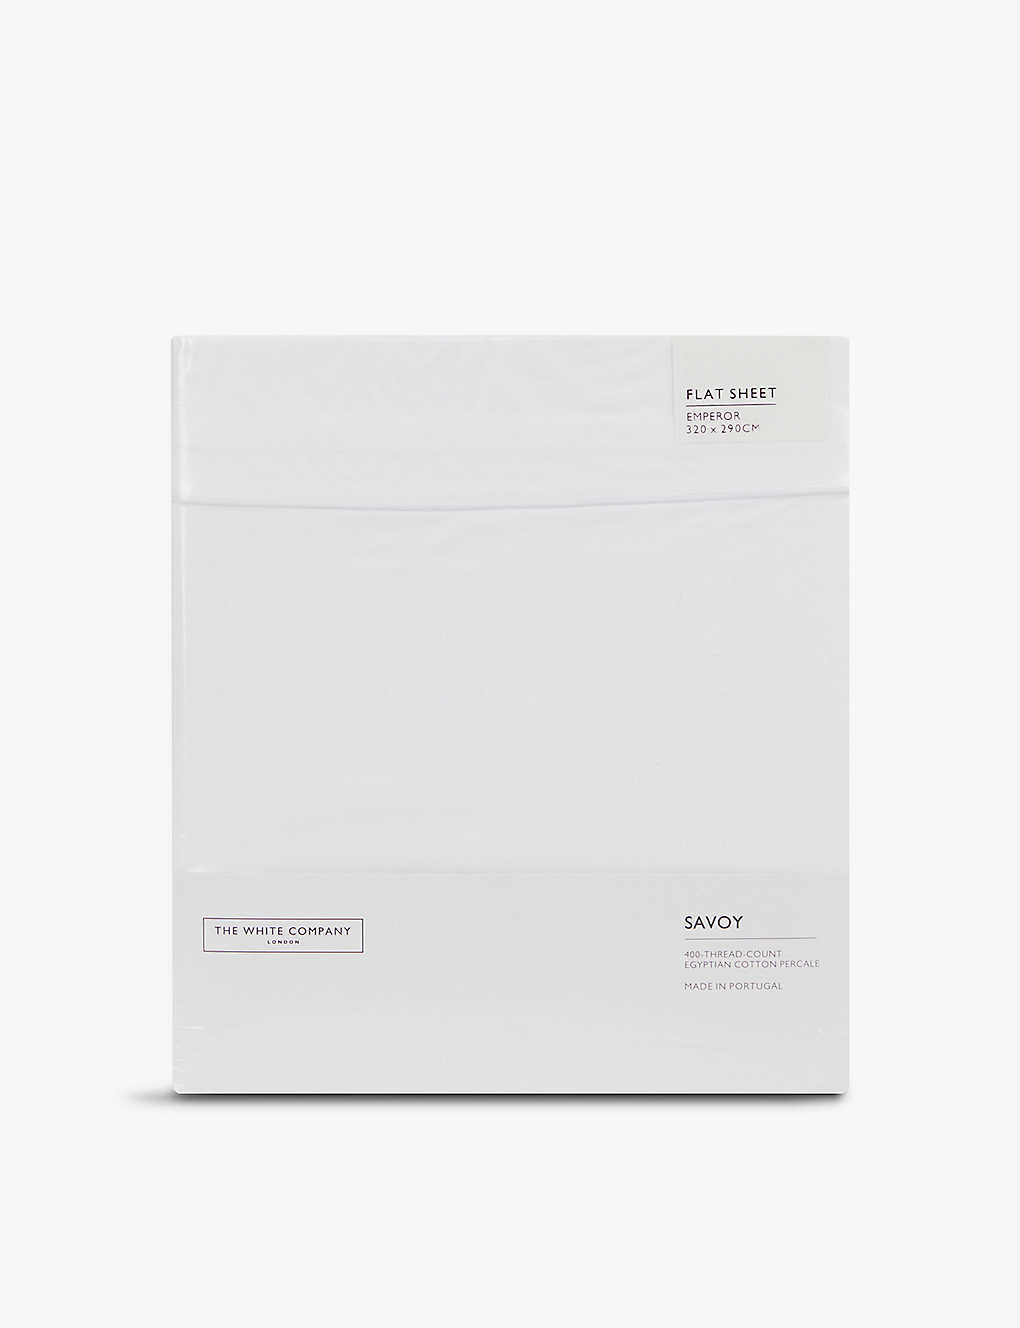 THE WHITE COMPANY: Savoy cotton emperor flat sheet 320cm x 290cm